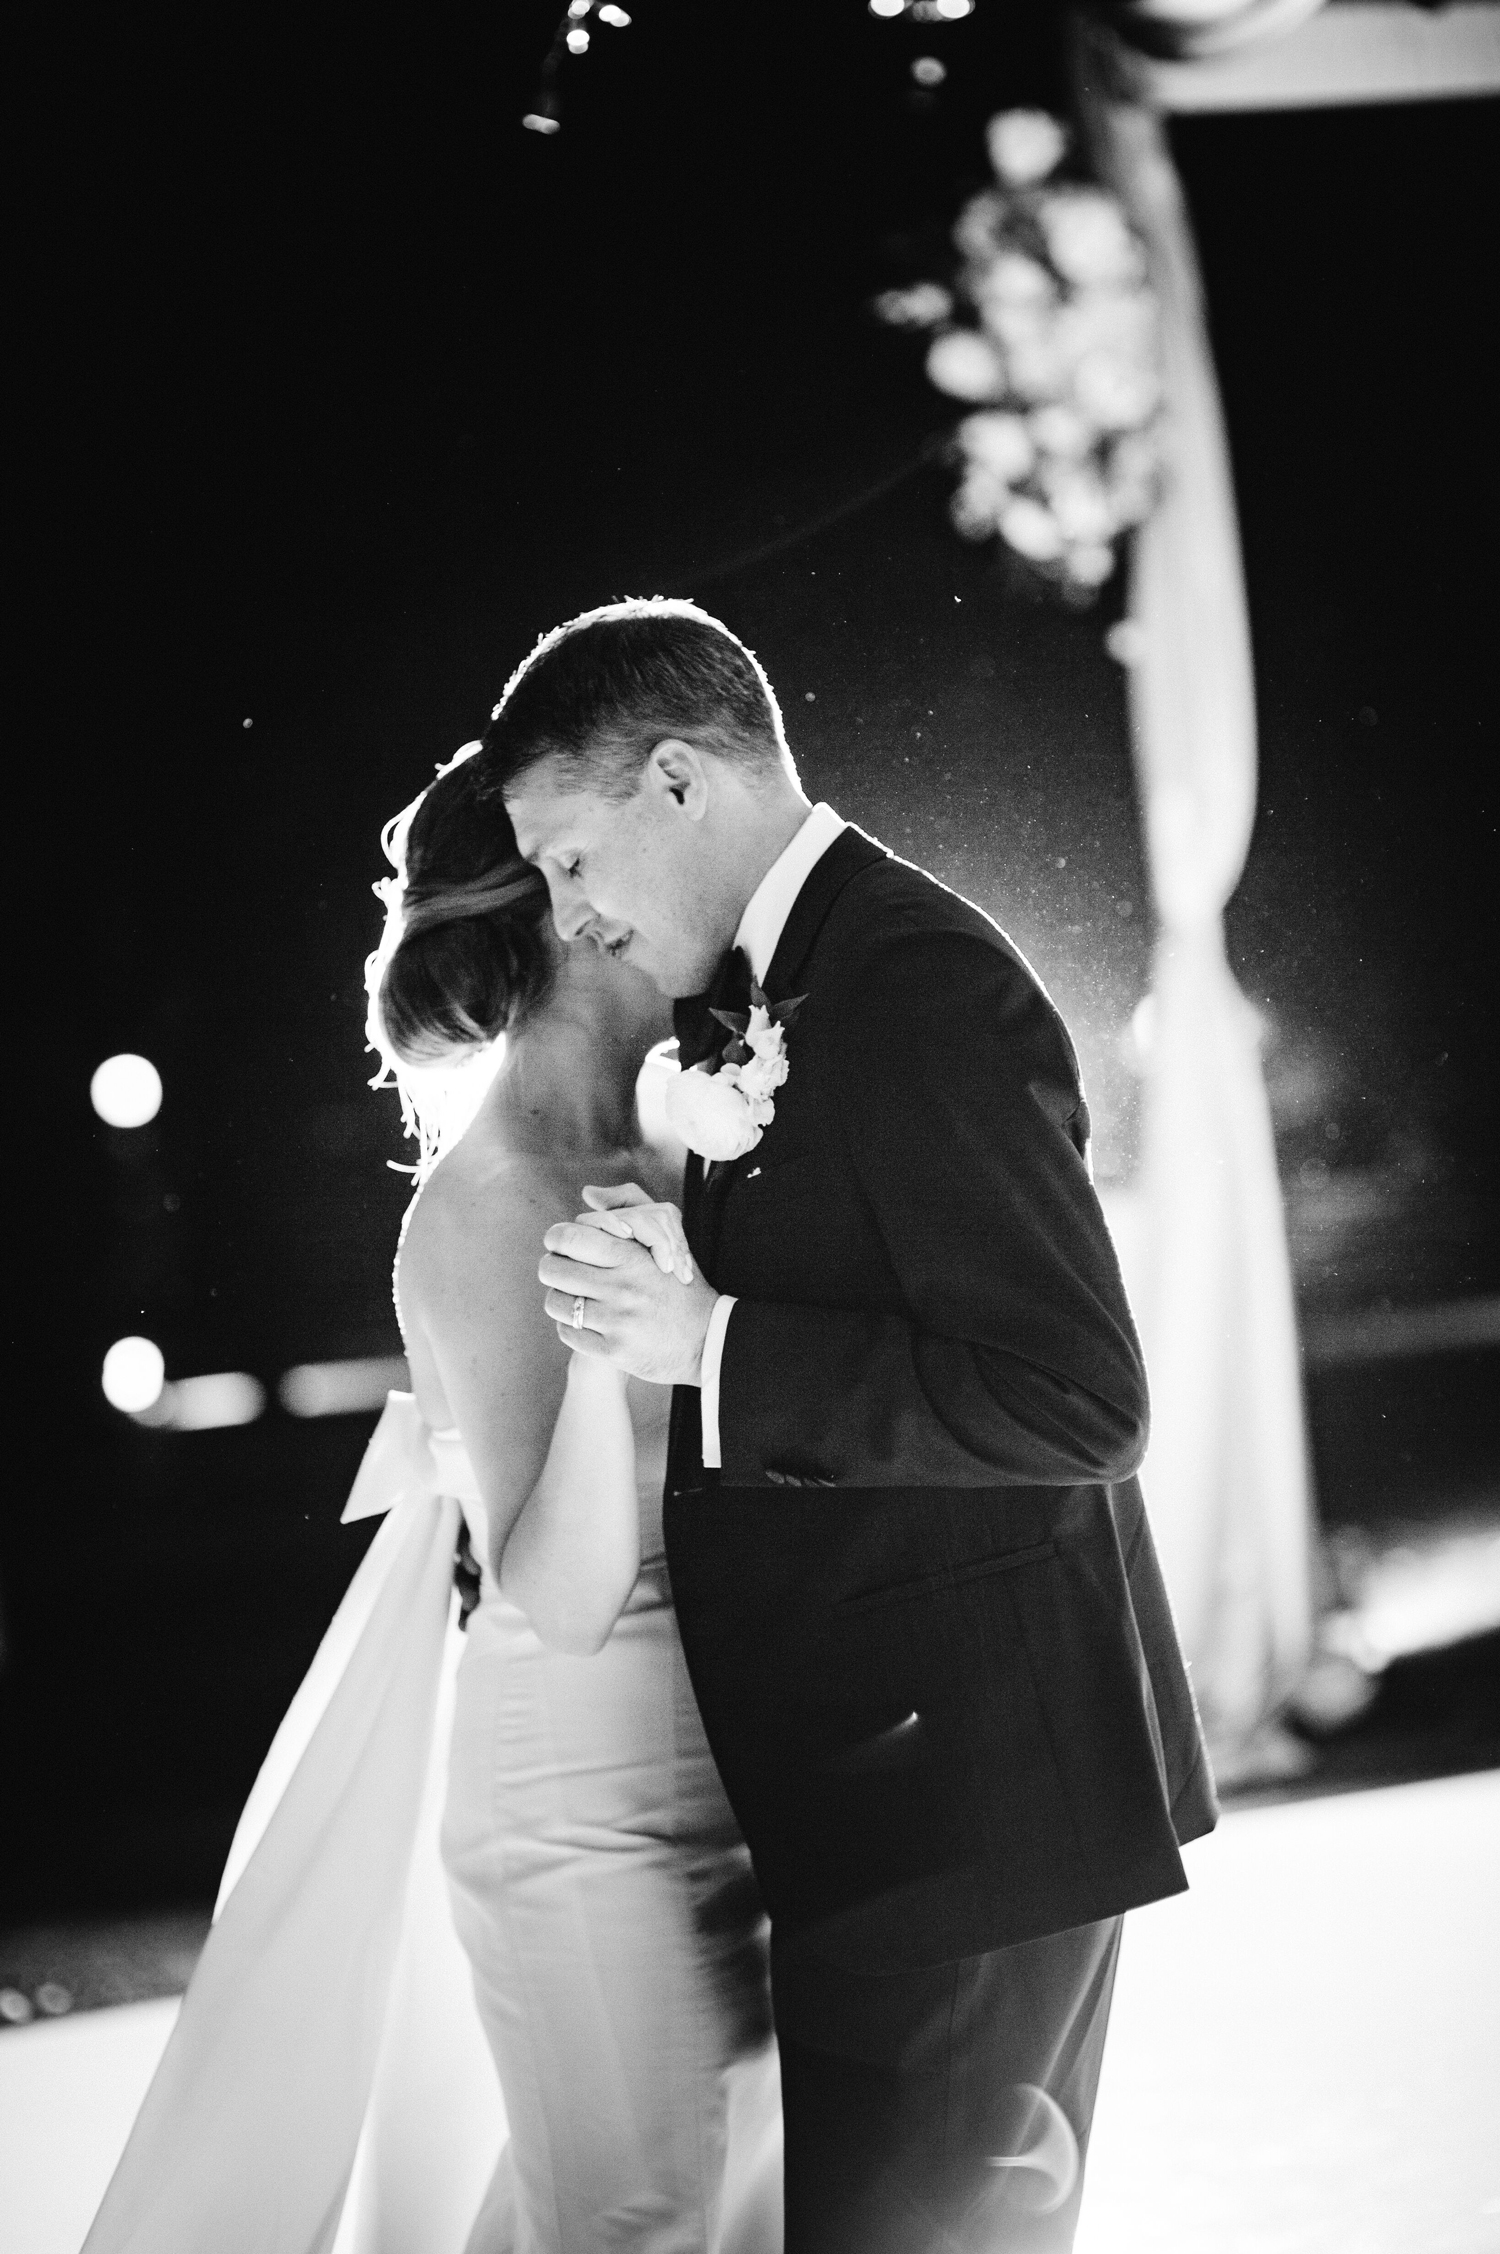 cathleen and winston wedding bride and groom sharing first dance